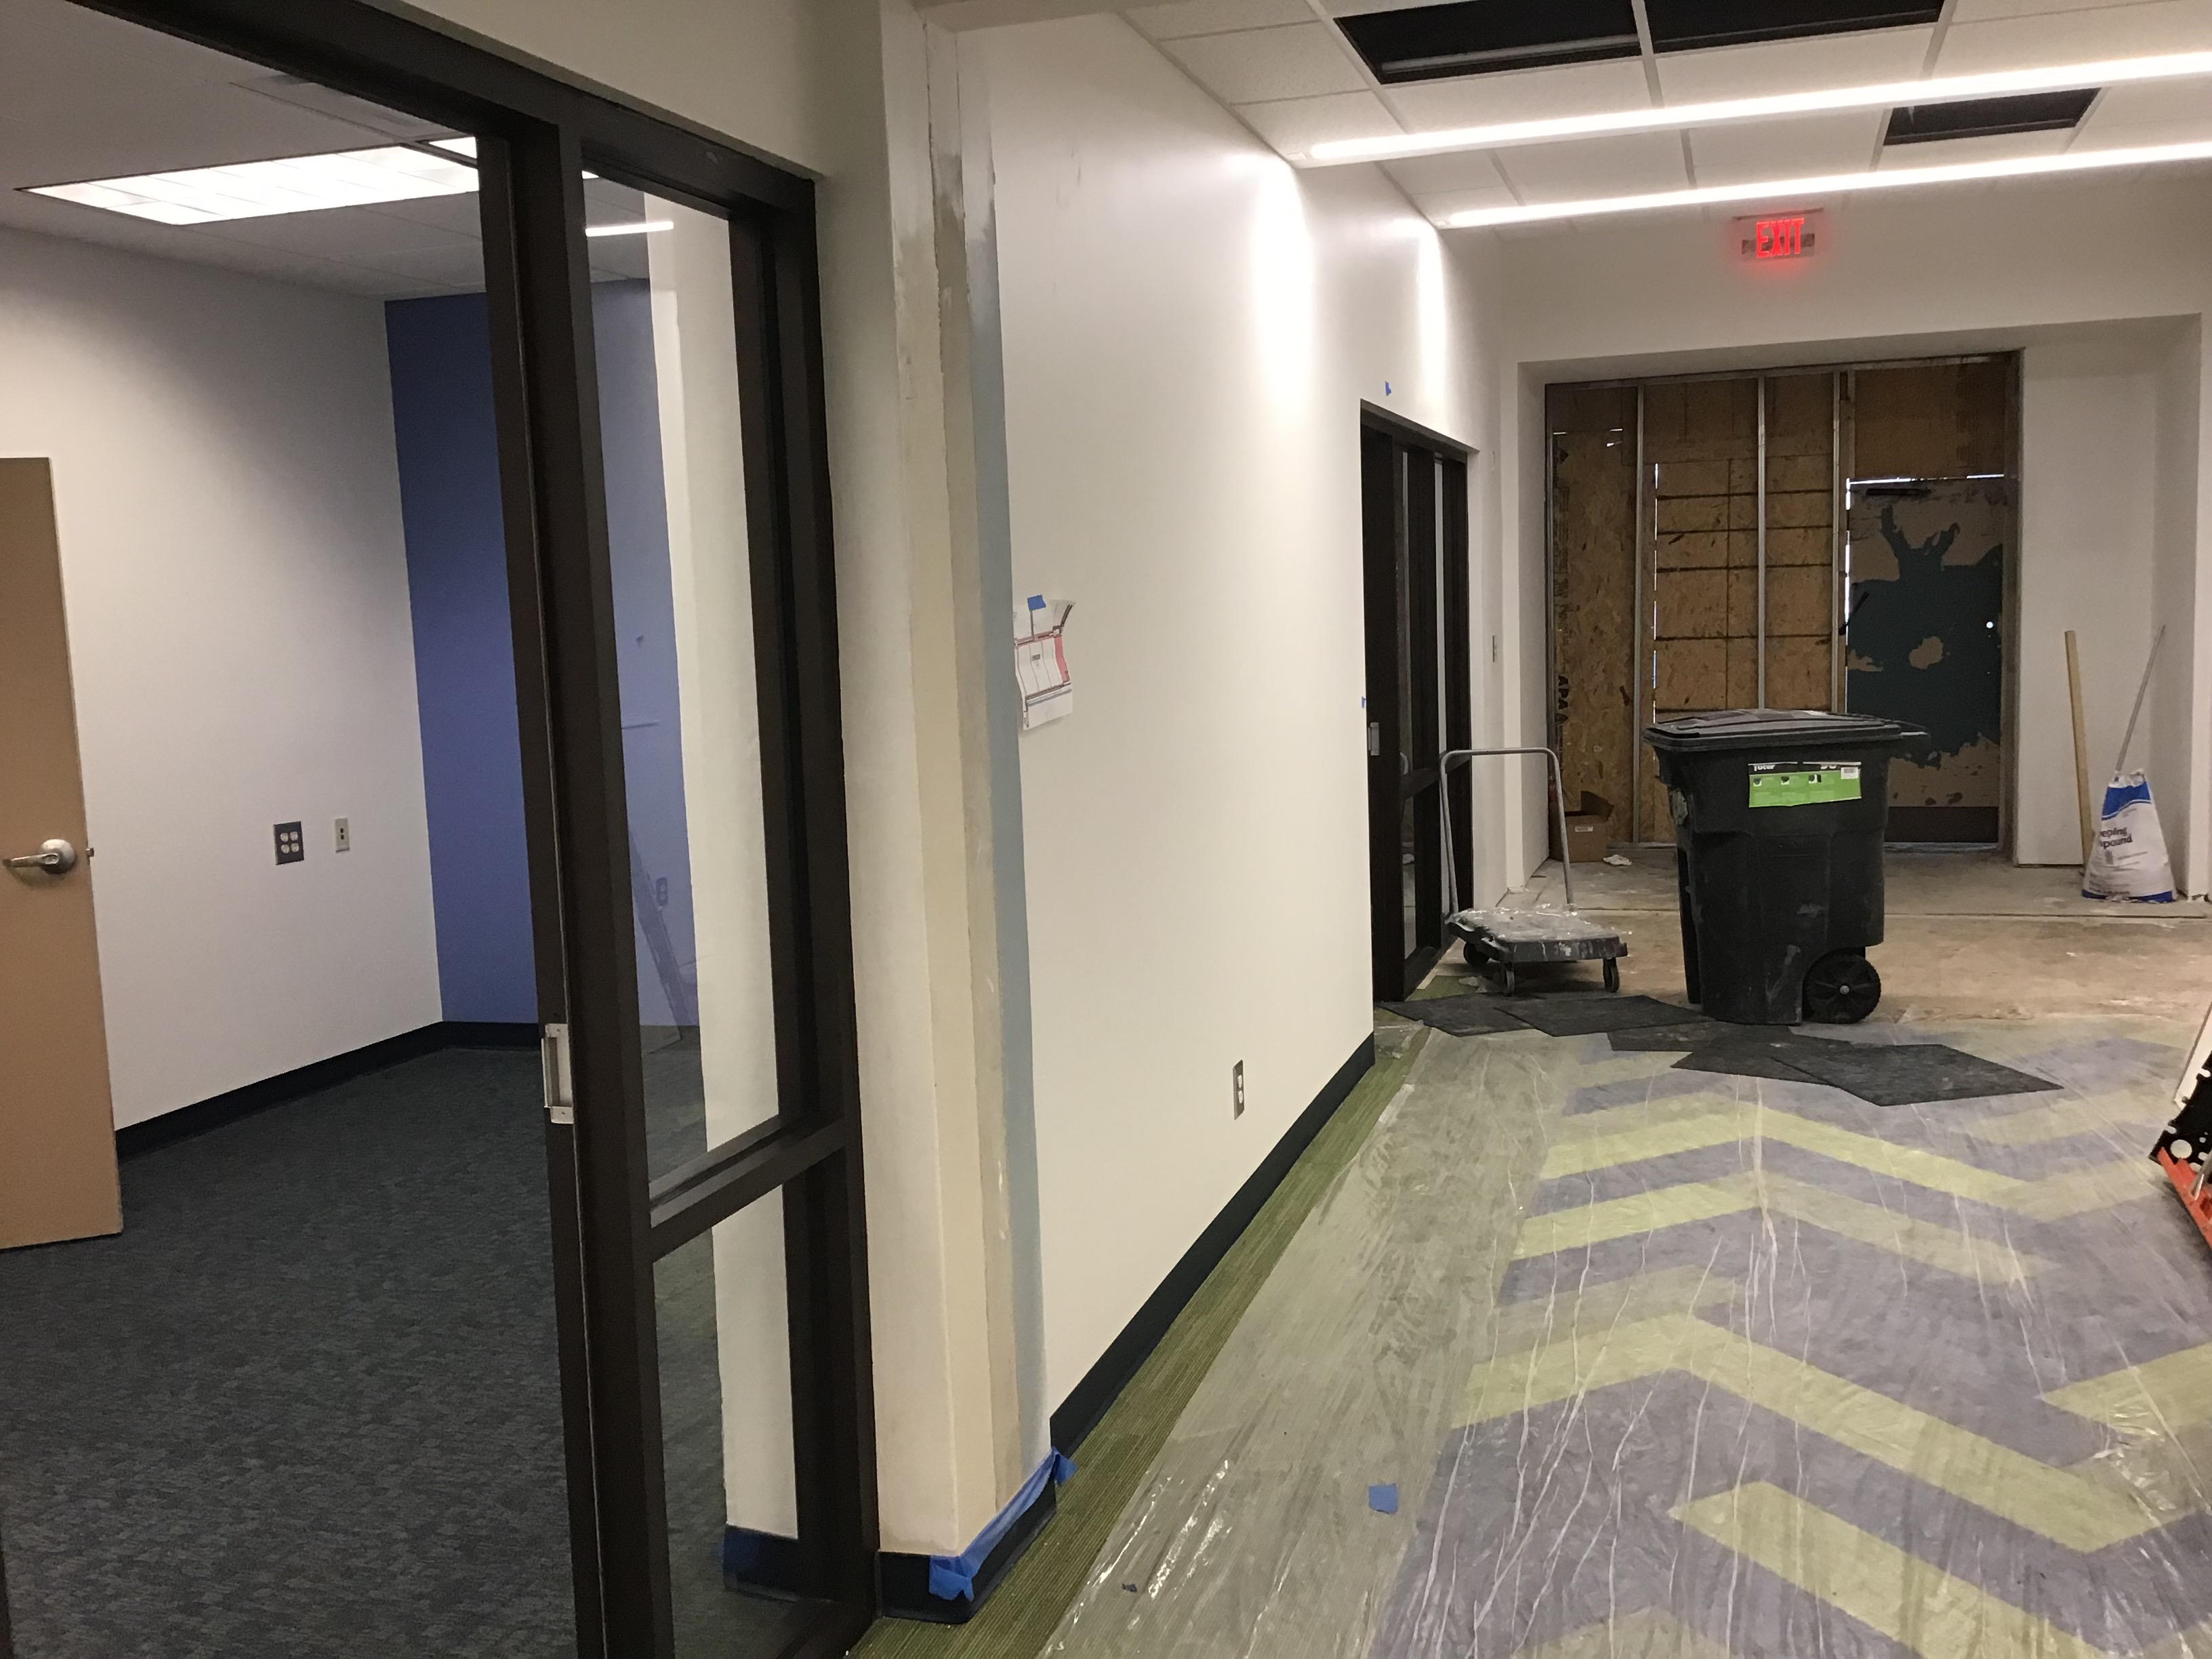 The dean's office, left, is near the entrance to the new addition to the building.